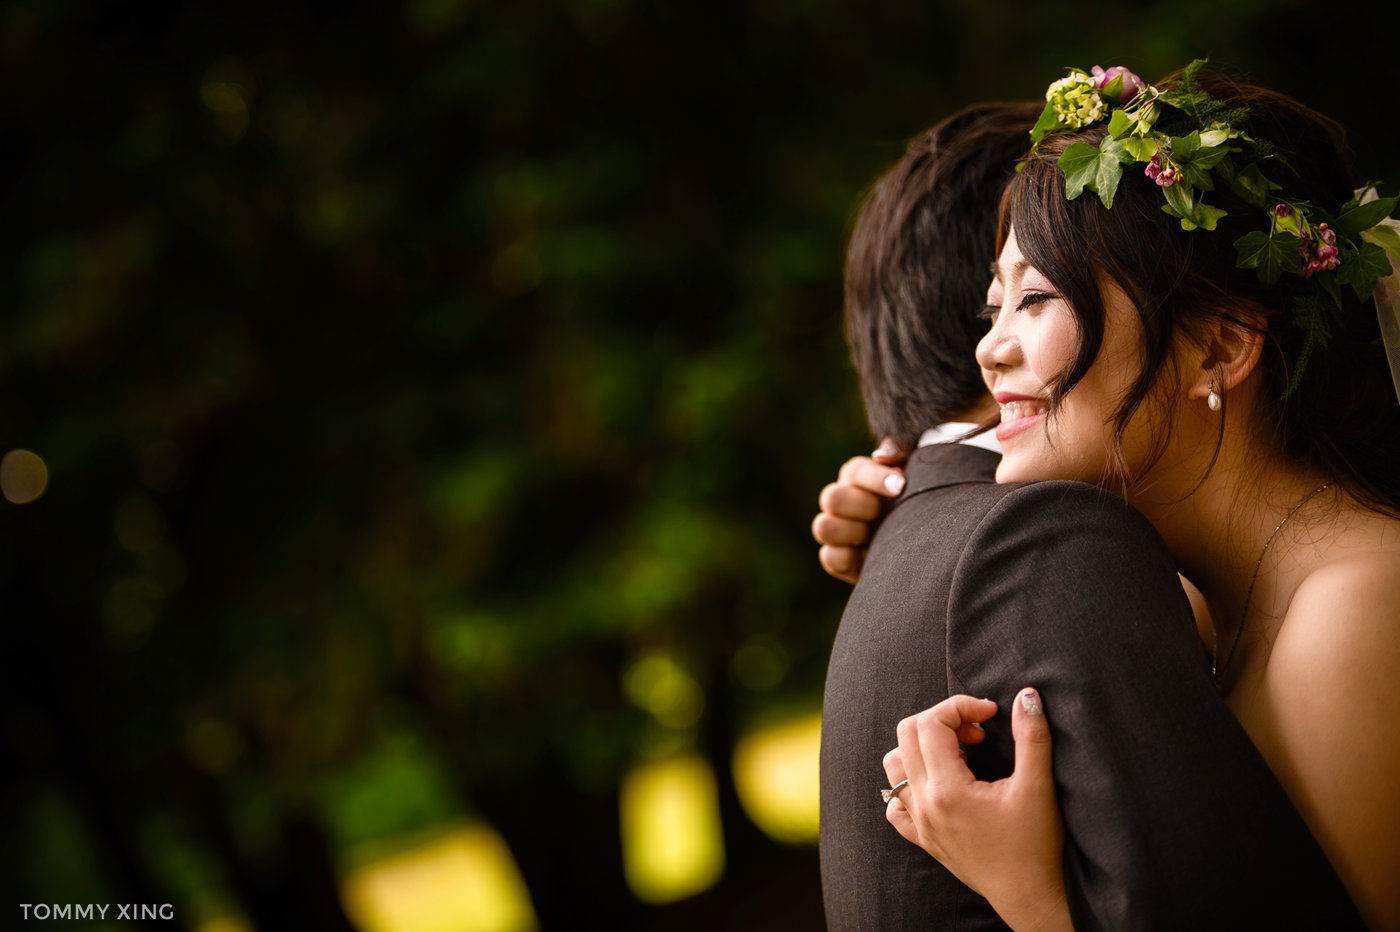 Seattle Wedding and pre wedding Los Angeles Tommy Xing Photography 西雅图洛杉矶旧金山婚礼婚纱照摄影师 124.jpg